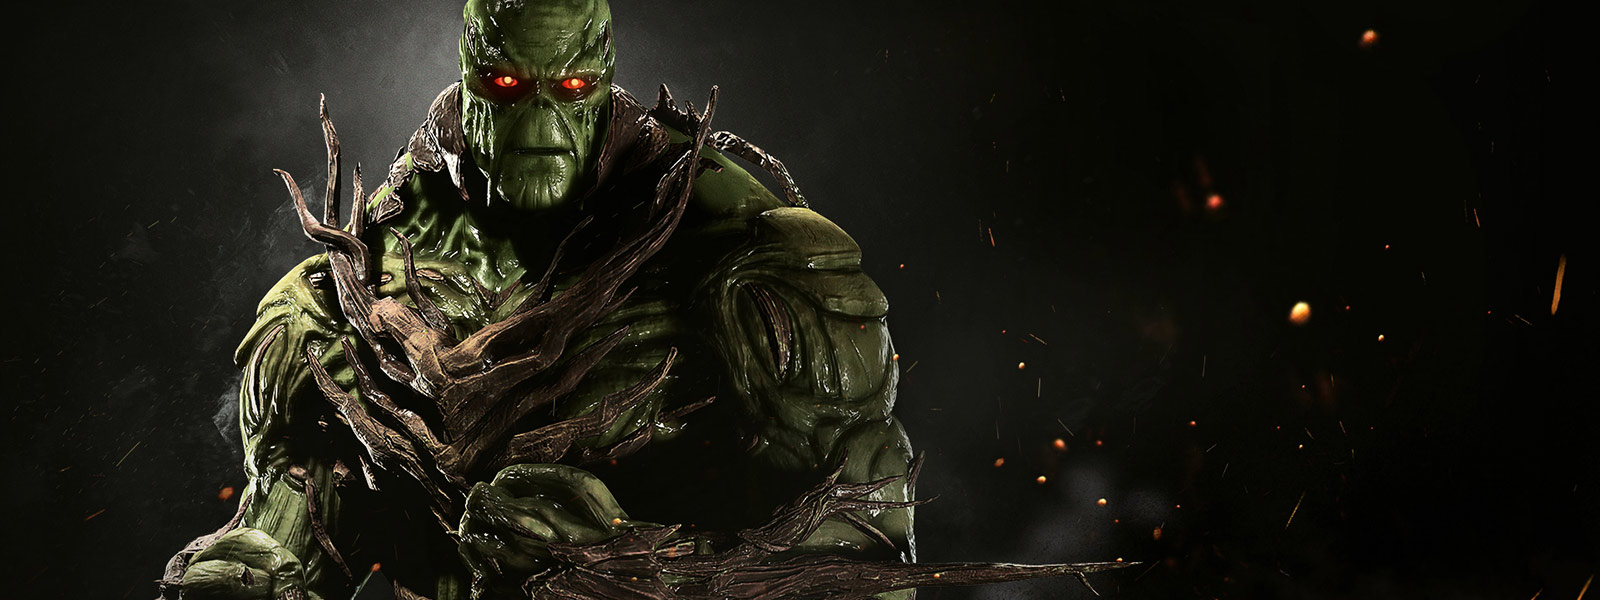 Injustice 2: Swamp Thing